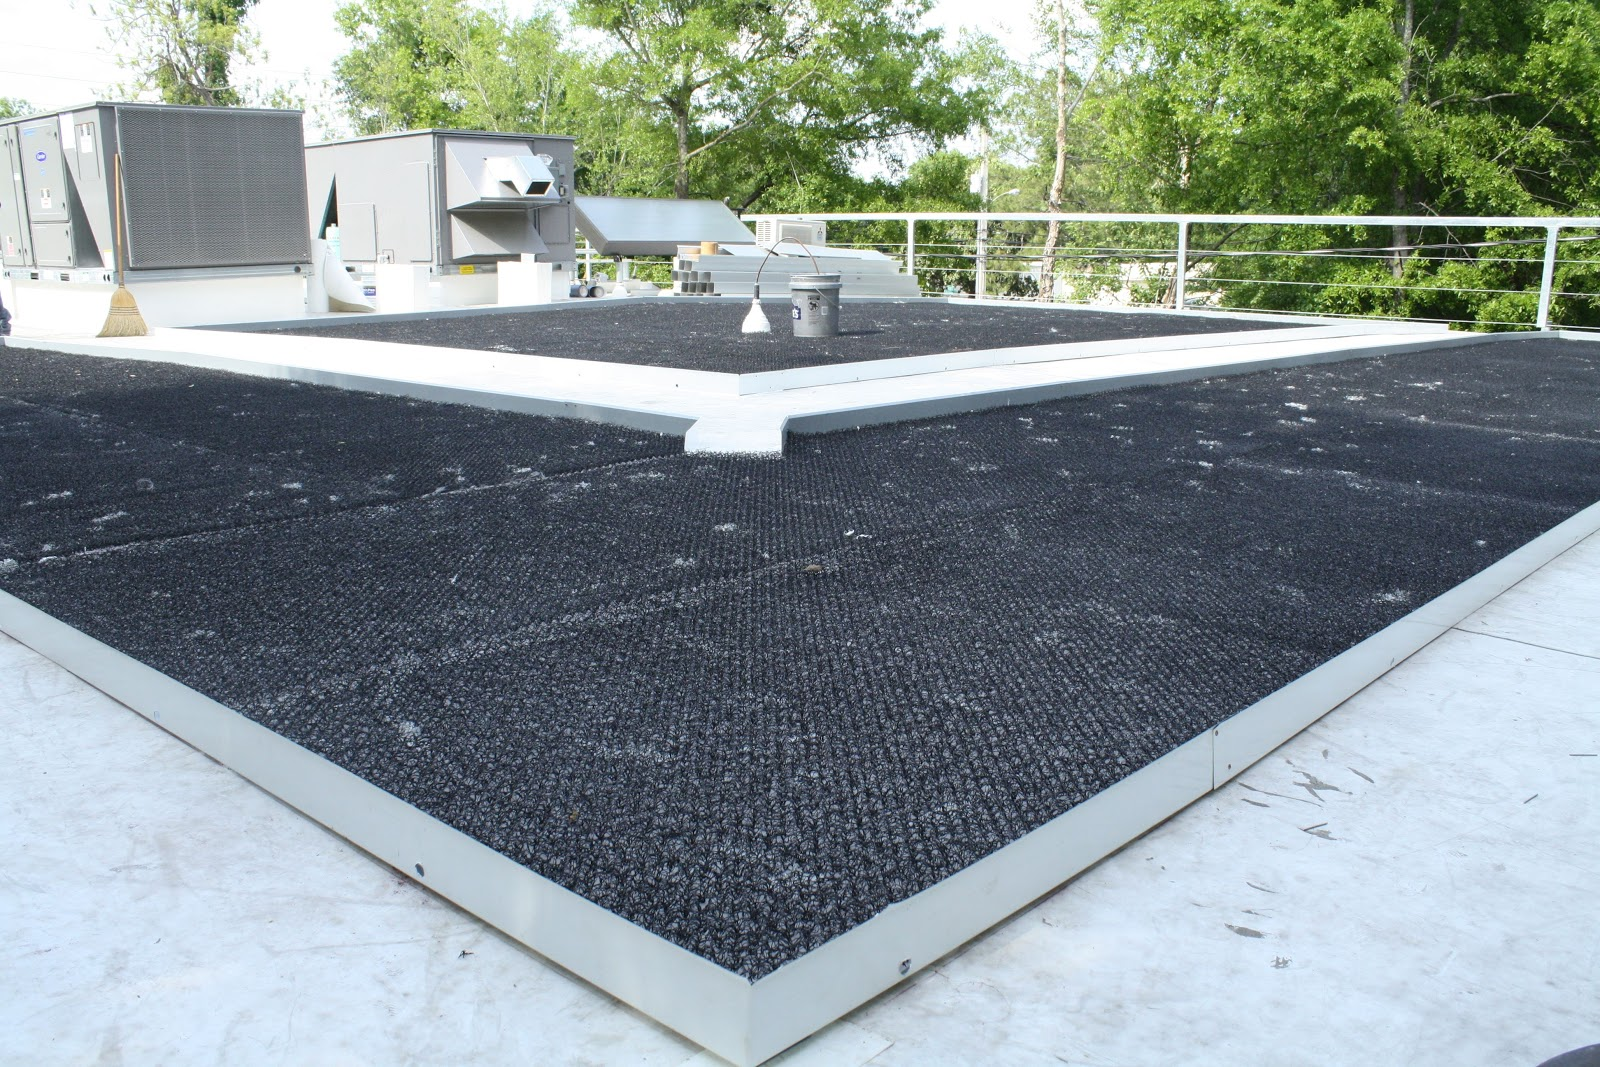 Kevin Songer Green Roof System Installed Ready For Soil